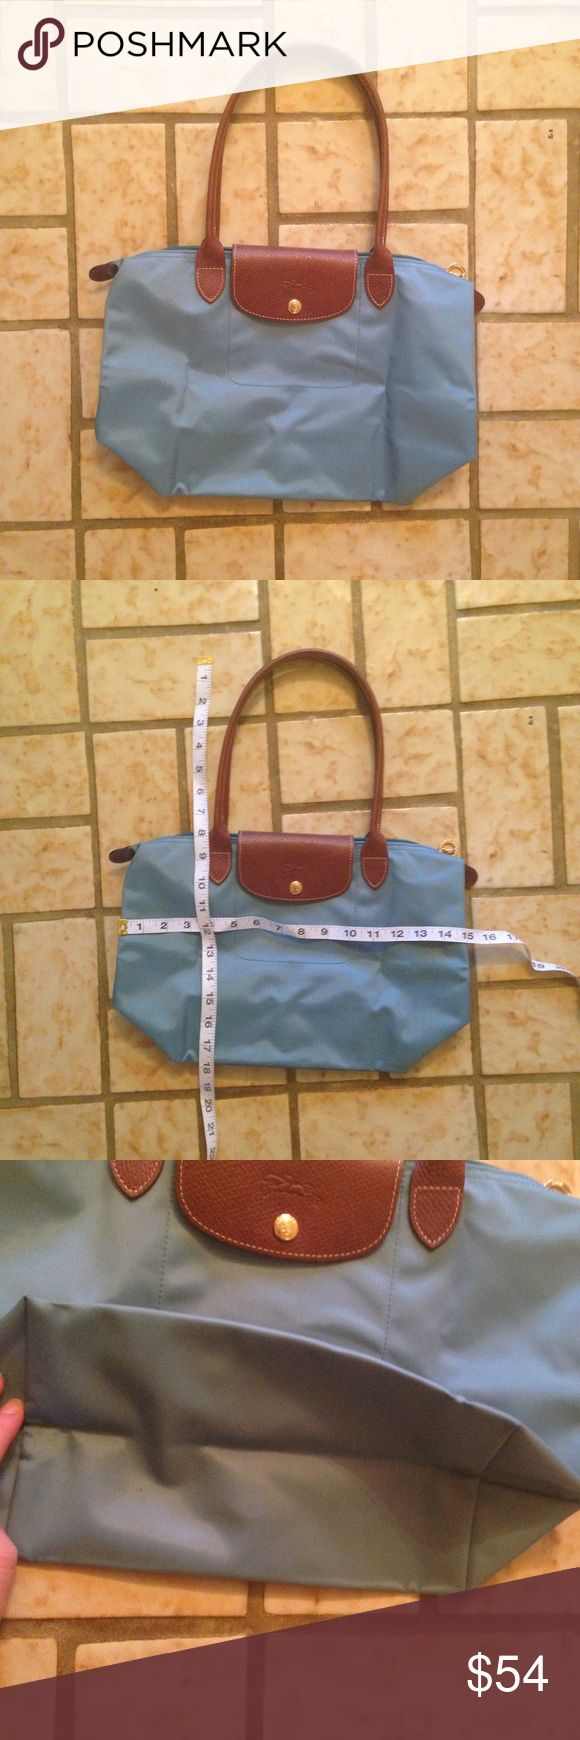 Longchamp Bag This bag is perfect for everyday use! It is in excellent condition, with just one mark on the inside and some very light wear as shown. It is bright blue in person, and measurements can be seen in the pictures. Please let me know if you have any questions! Bundle with my other items for a good deal. Thanks for looking 😊 Longchamp Bags Shoulder Bags